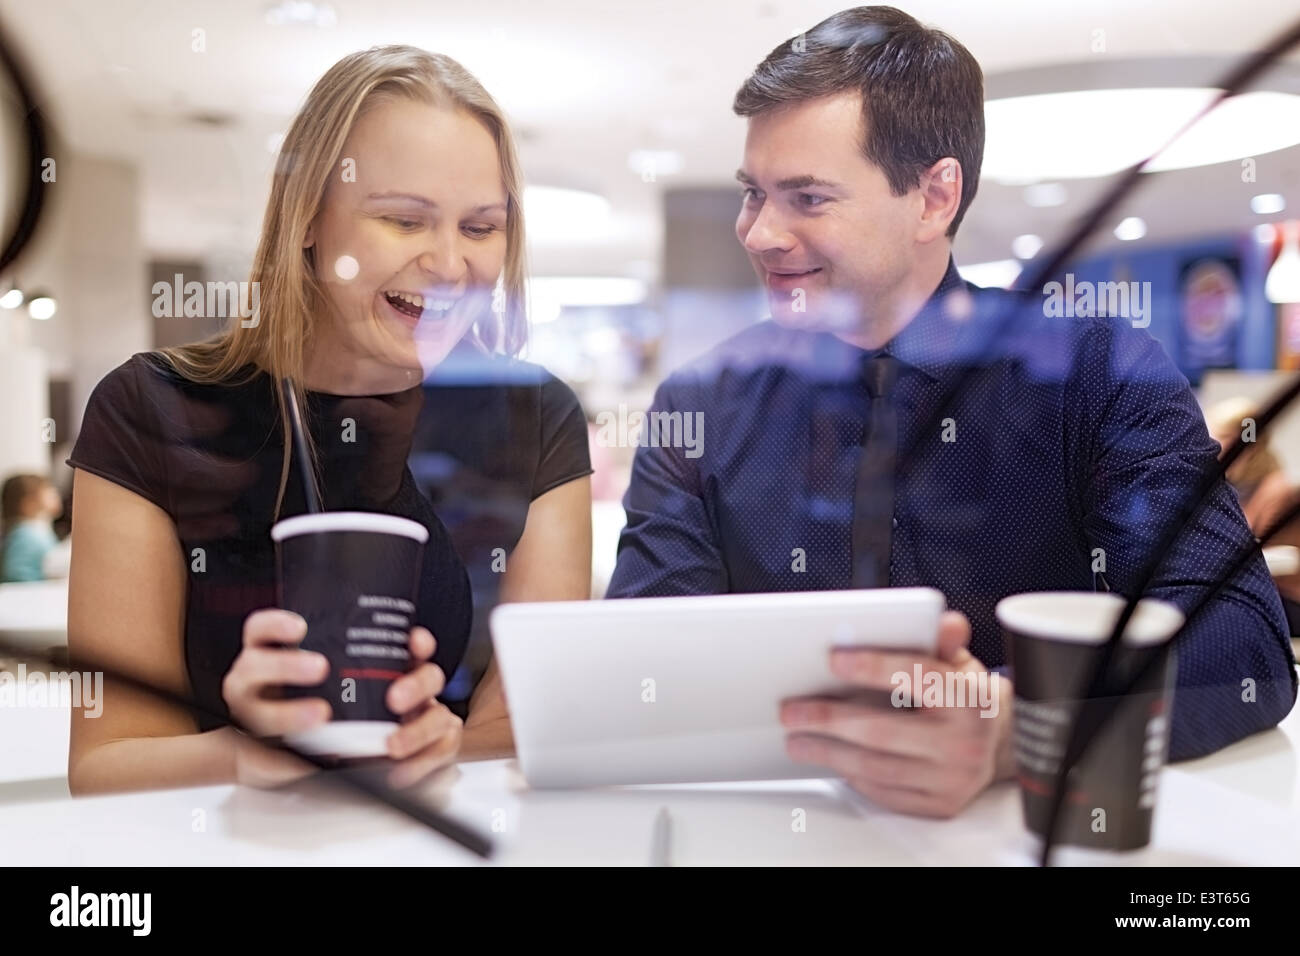 Woman laughs as man shows tablet - Stock Image